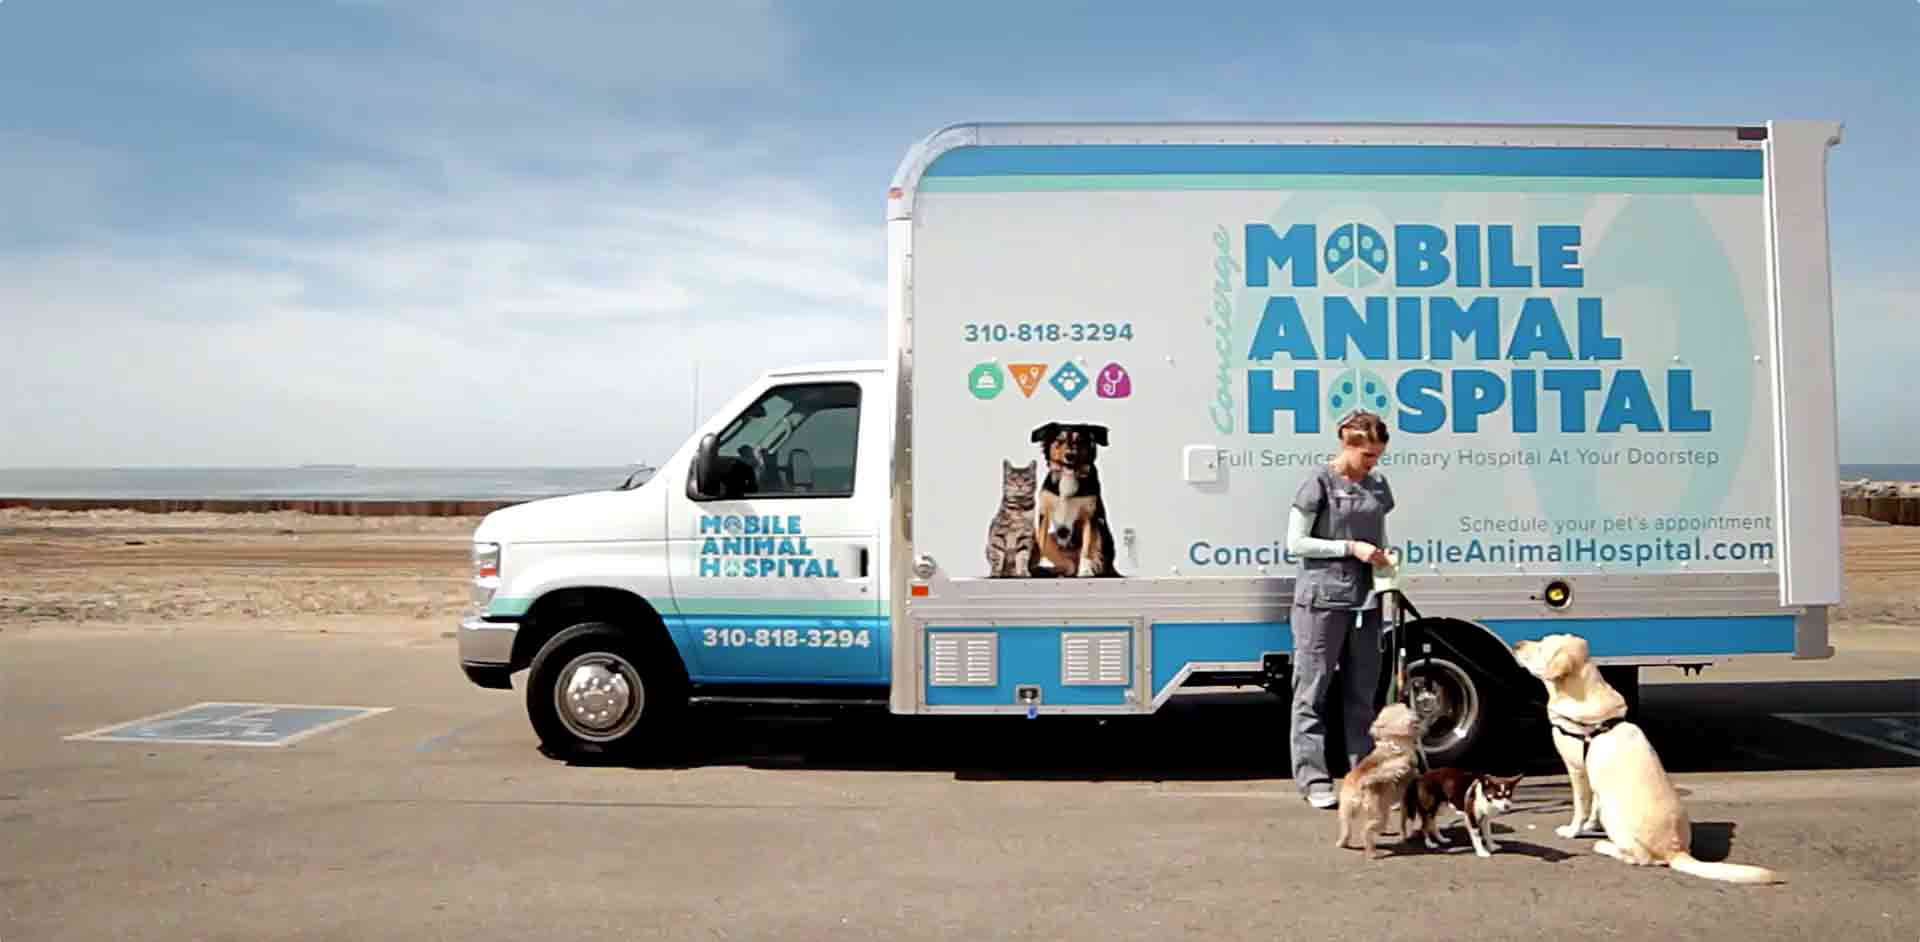 Concierge Mobile Animal Hospital truck